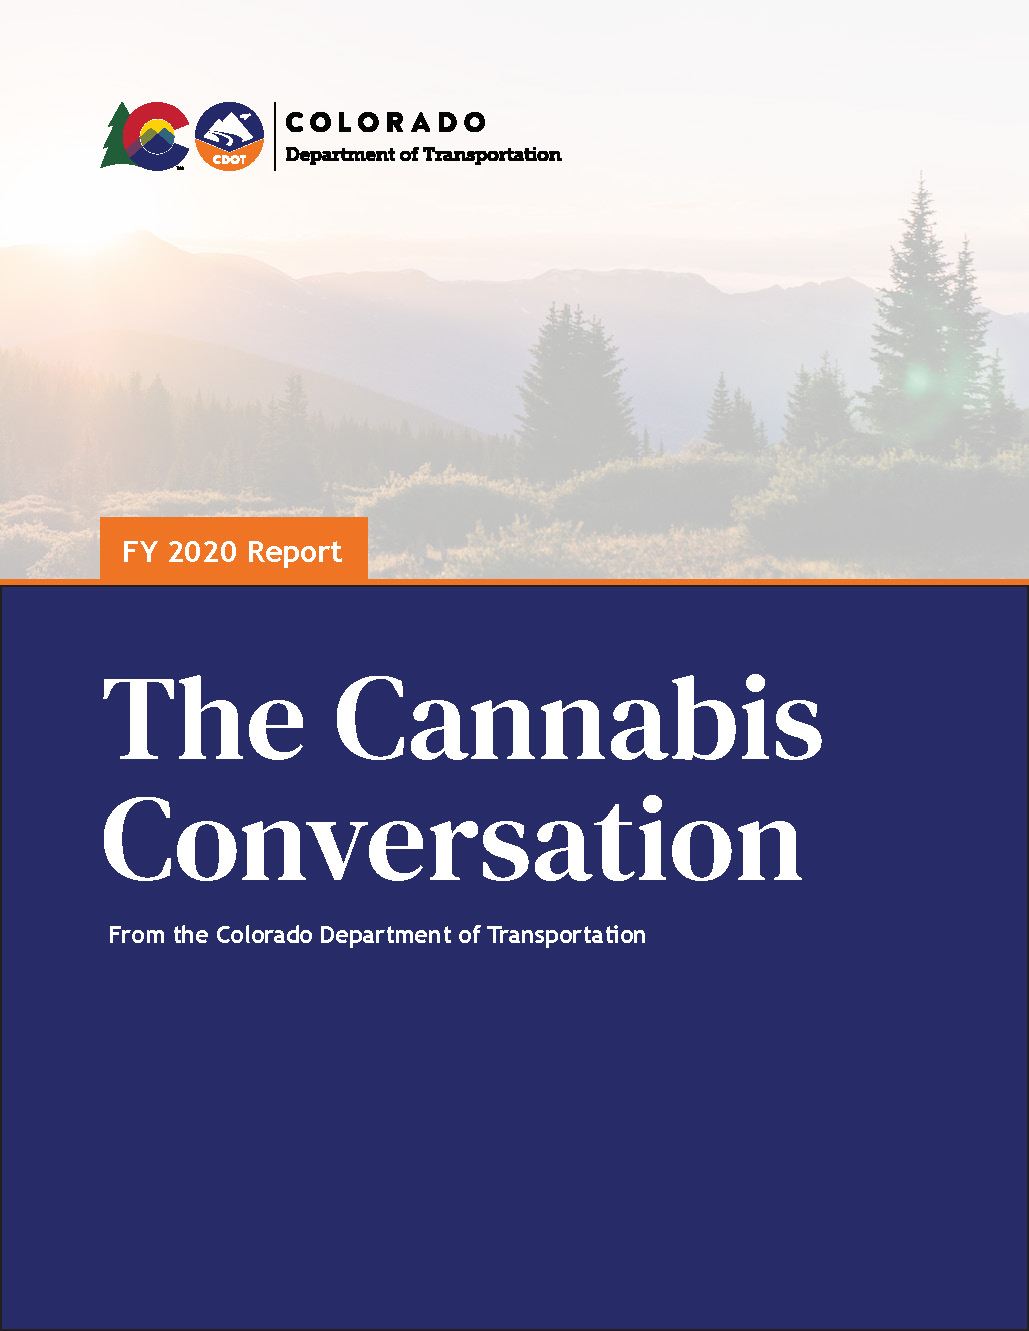 Cannabis Conversation Report